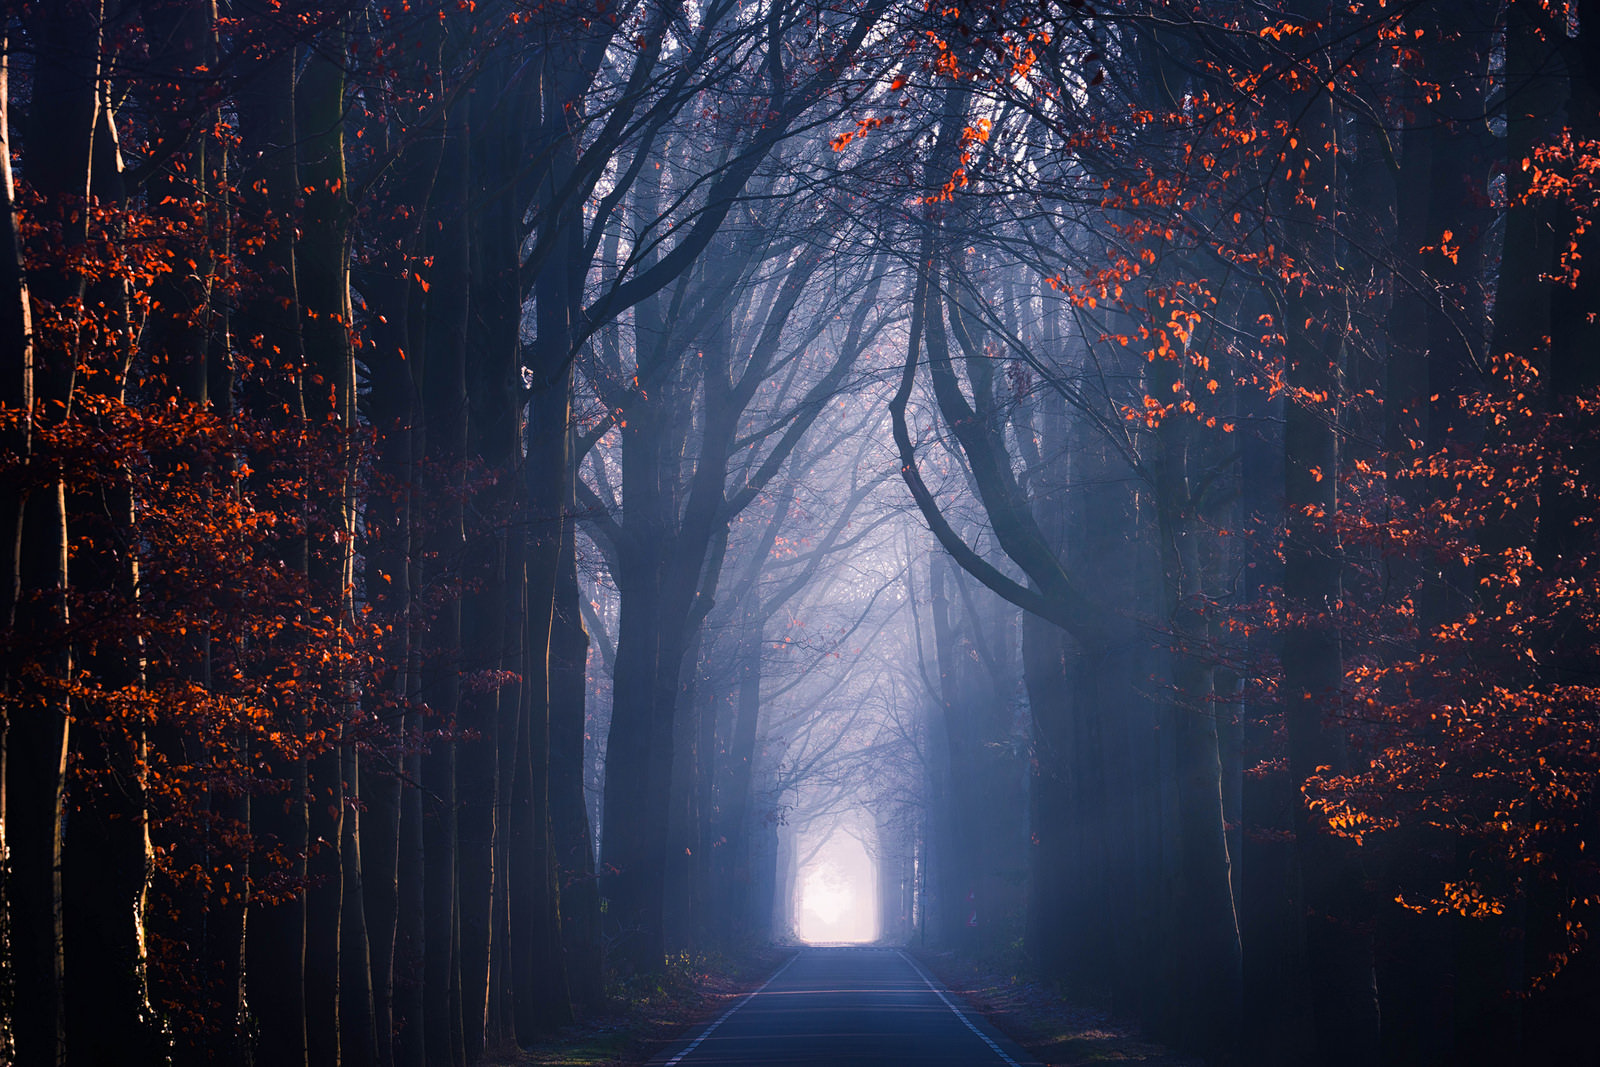 Forest road in Netherlands - arbili - bit.ly2nKwkZP